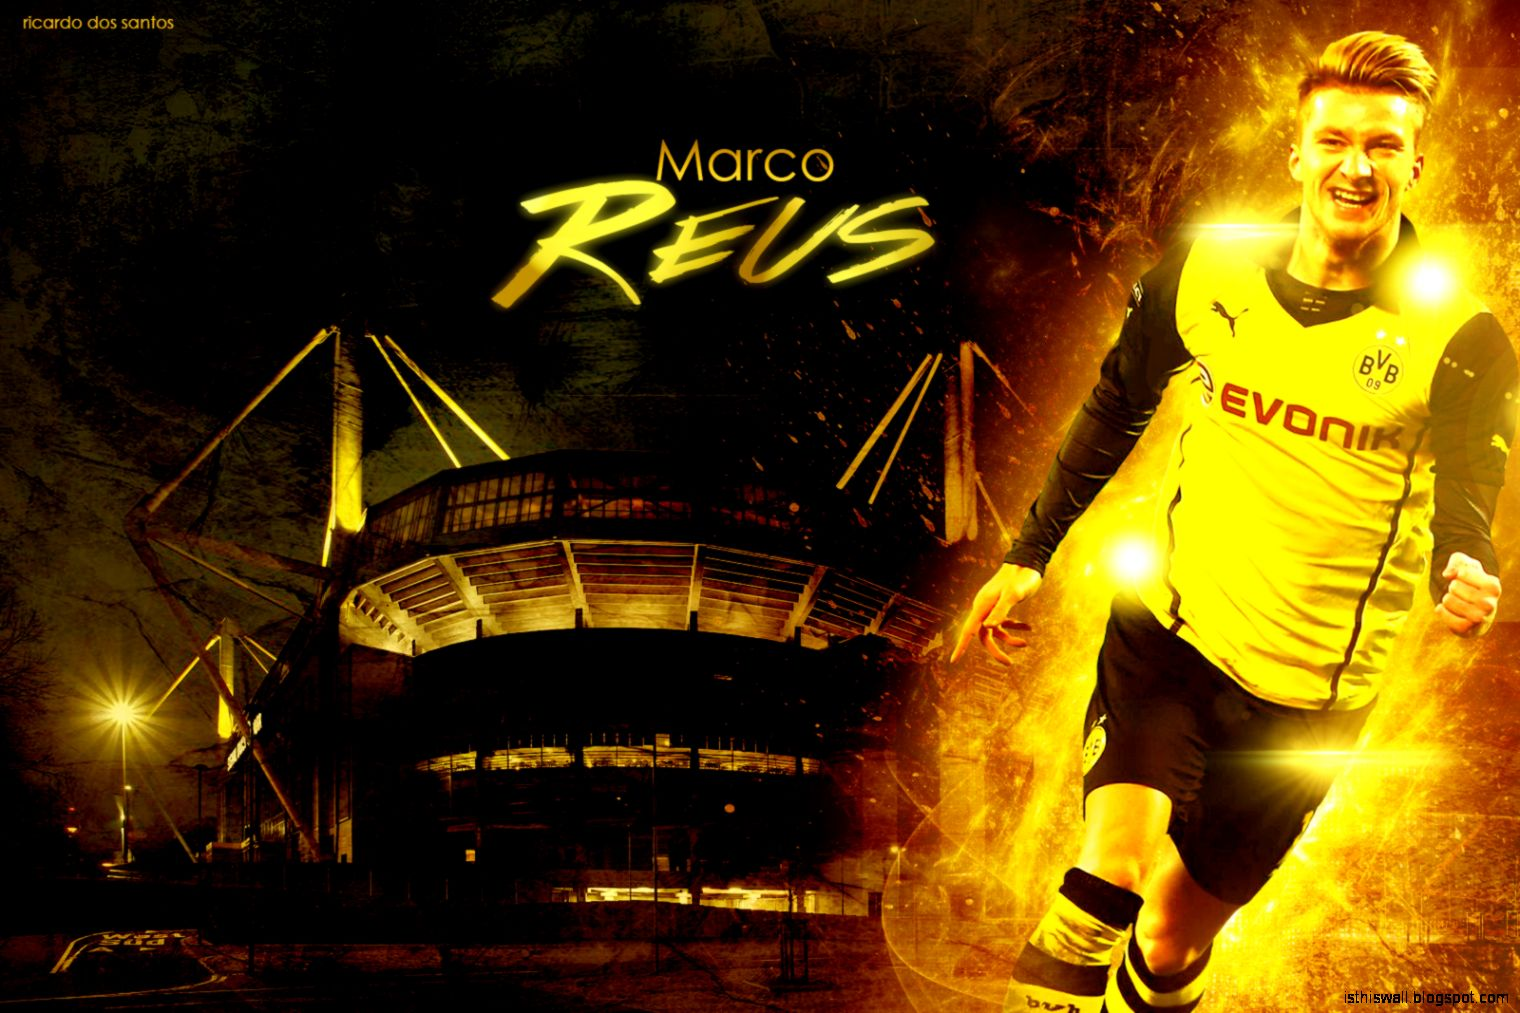 Marco Reus Borussia Dortmund 2014 Wallpaper by RicardoDosSantos on